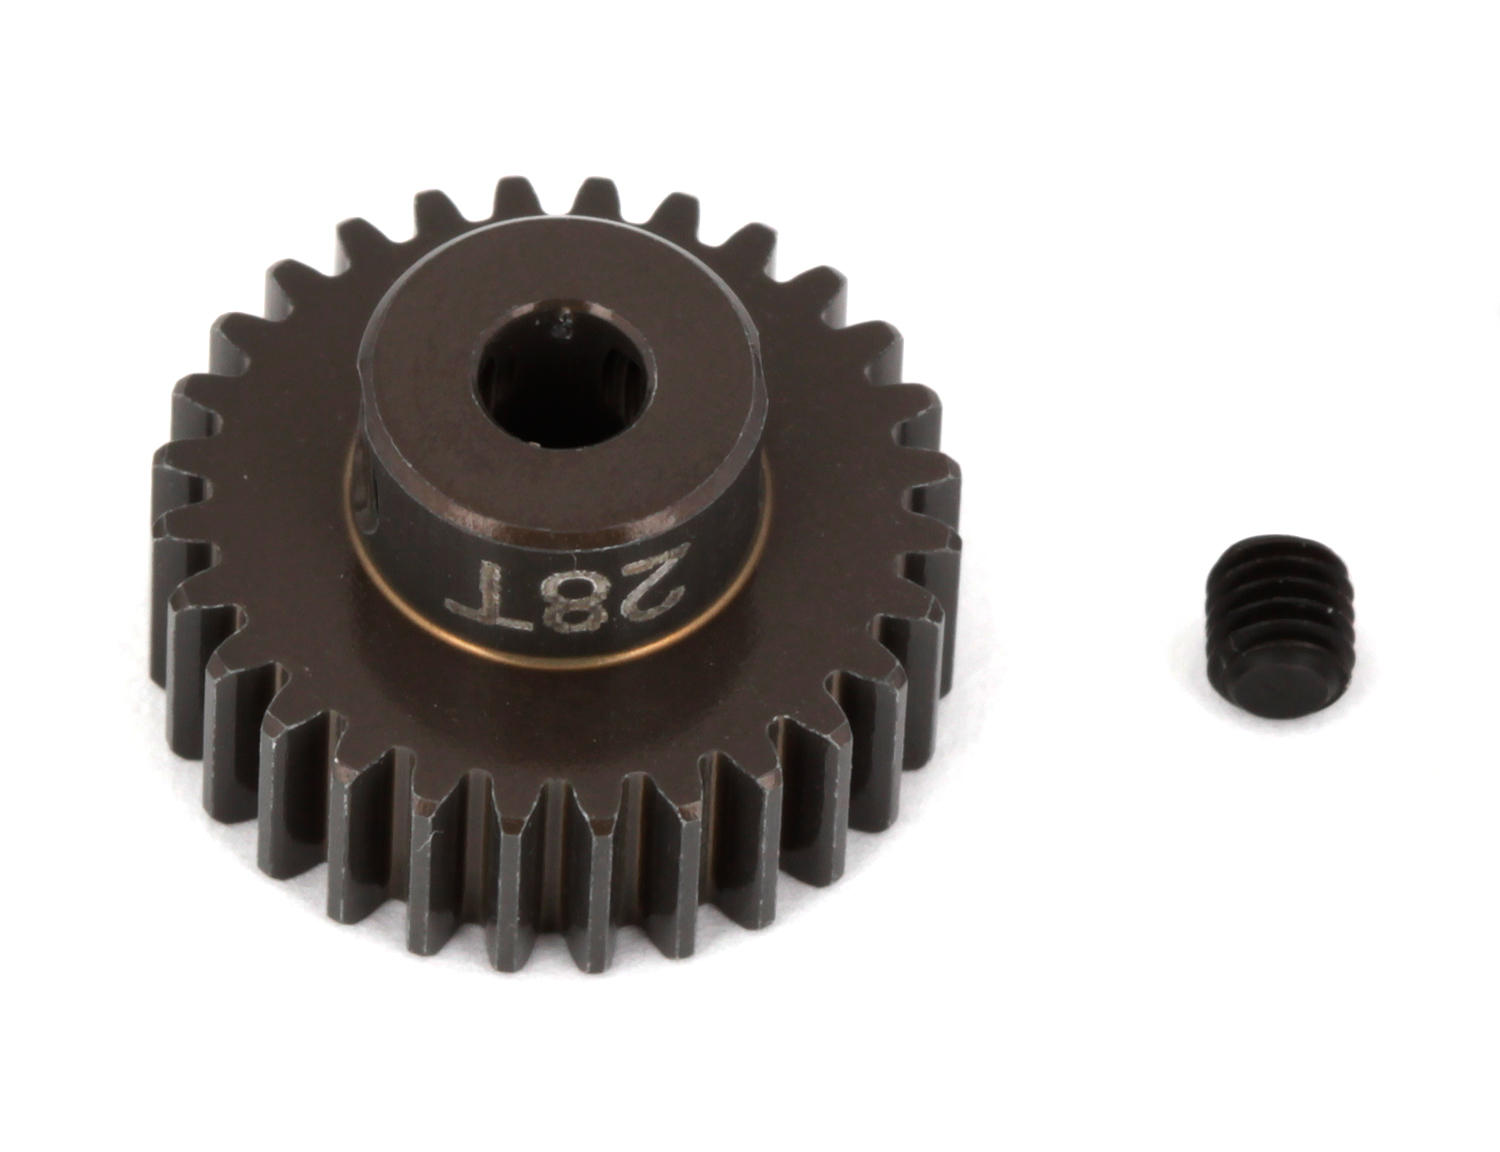 ASC1346 FT Aluminum Pinion Gear, 28T 48P, 1/8 shaft